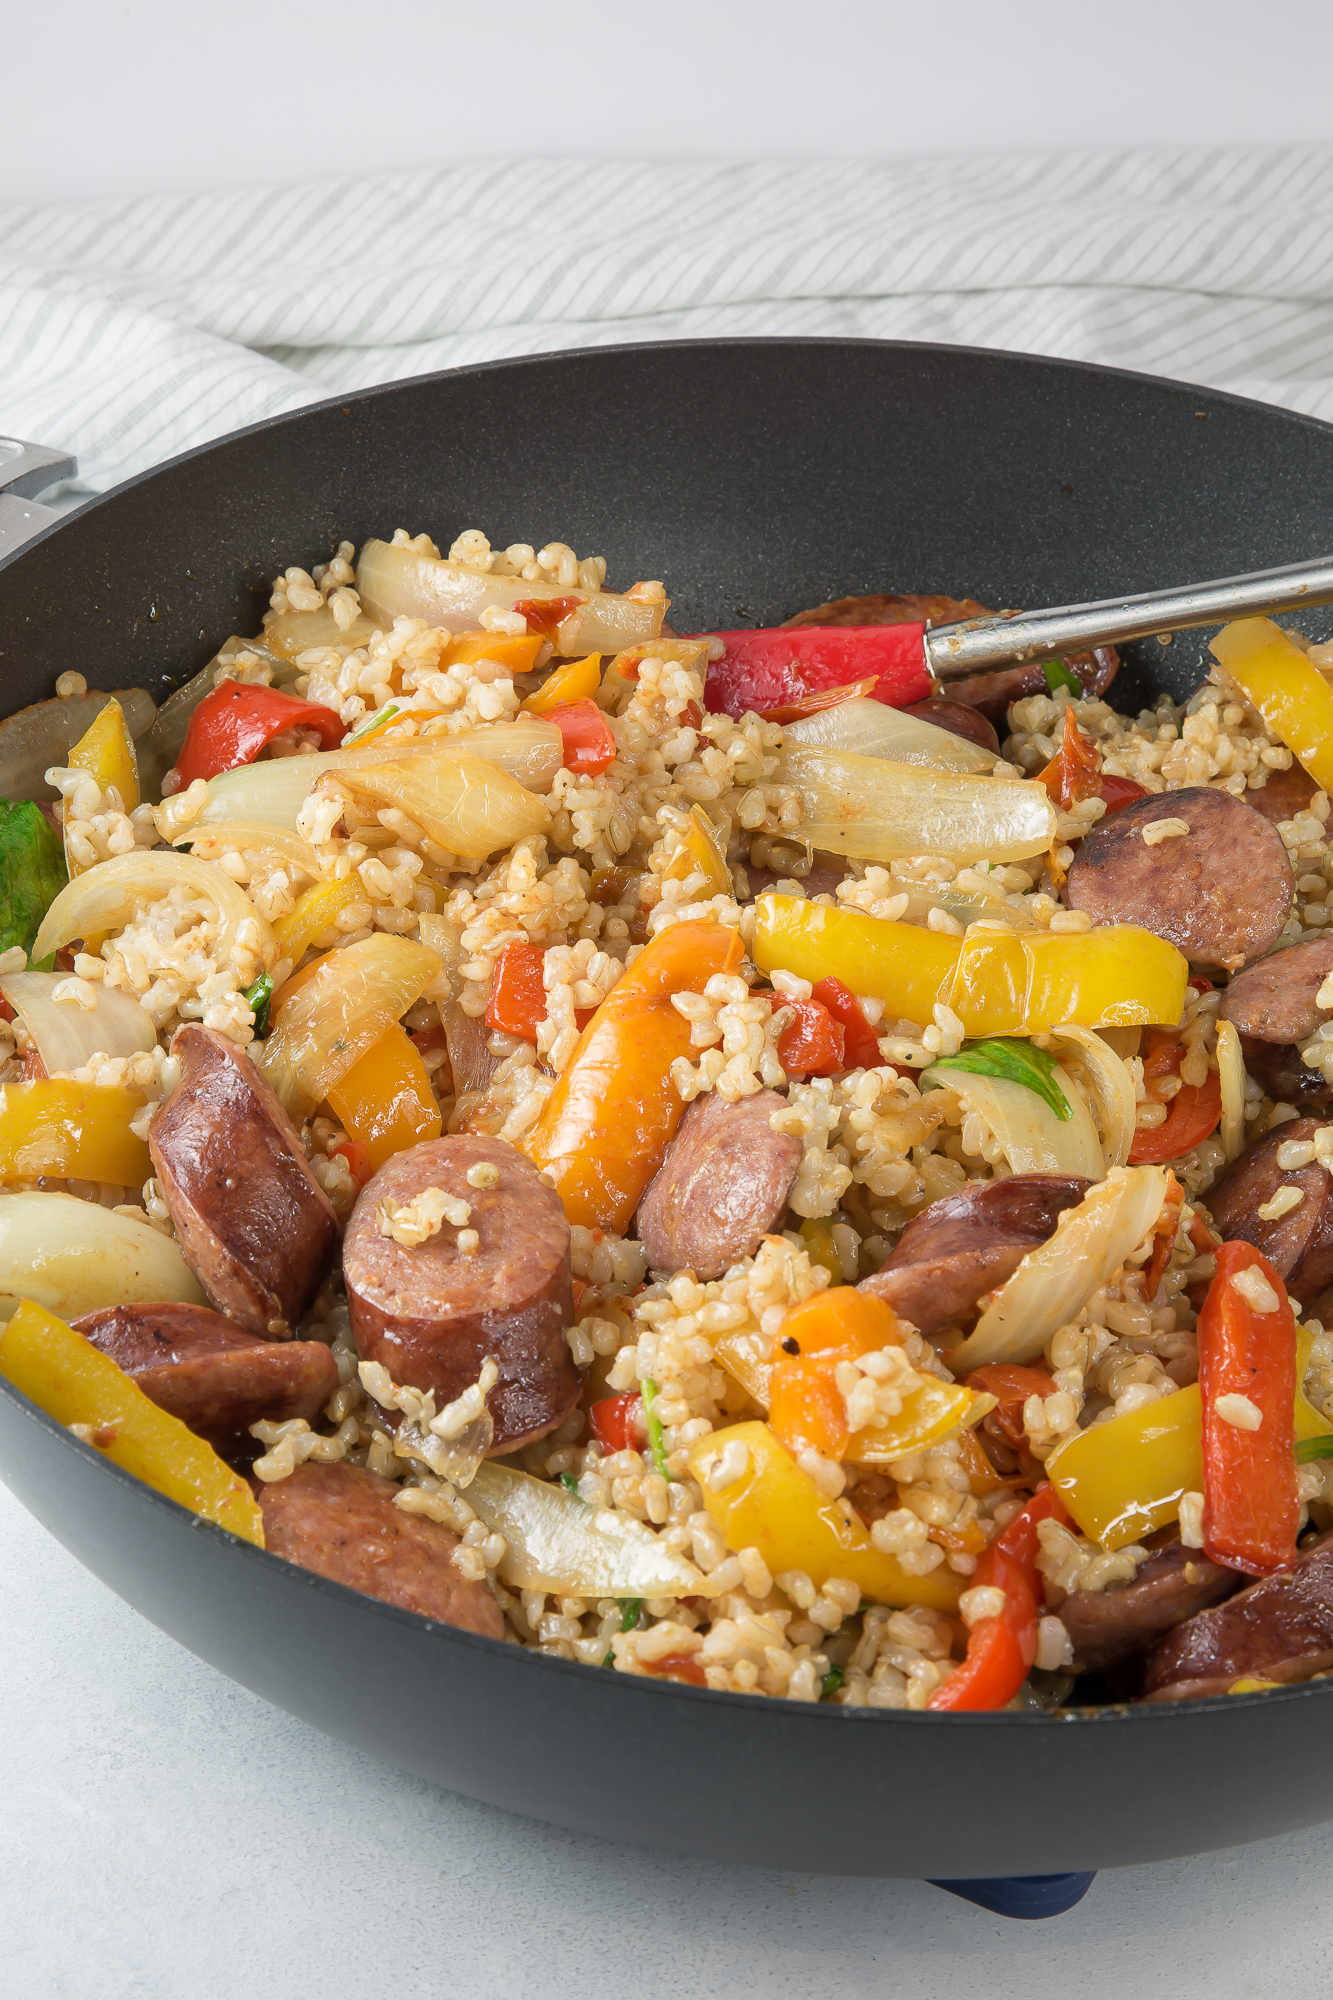 Kielbasa vegetable stir fry recipe easy and quick this 30 minute kielbasa vegetable stir fry recipe easy and quick this 30 minute meal is amazing deliciously plated forumfinder